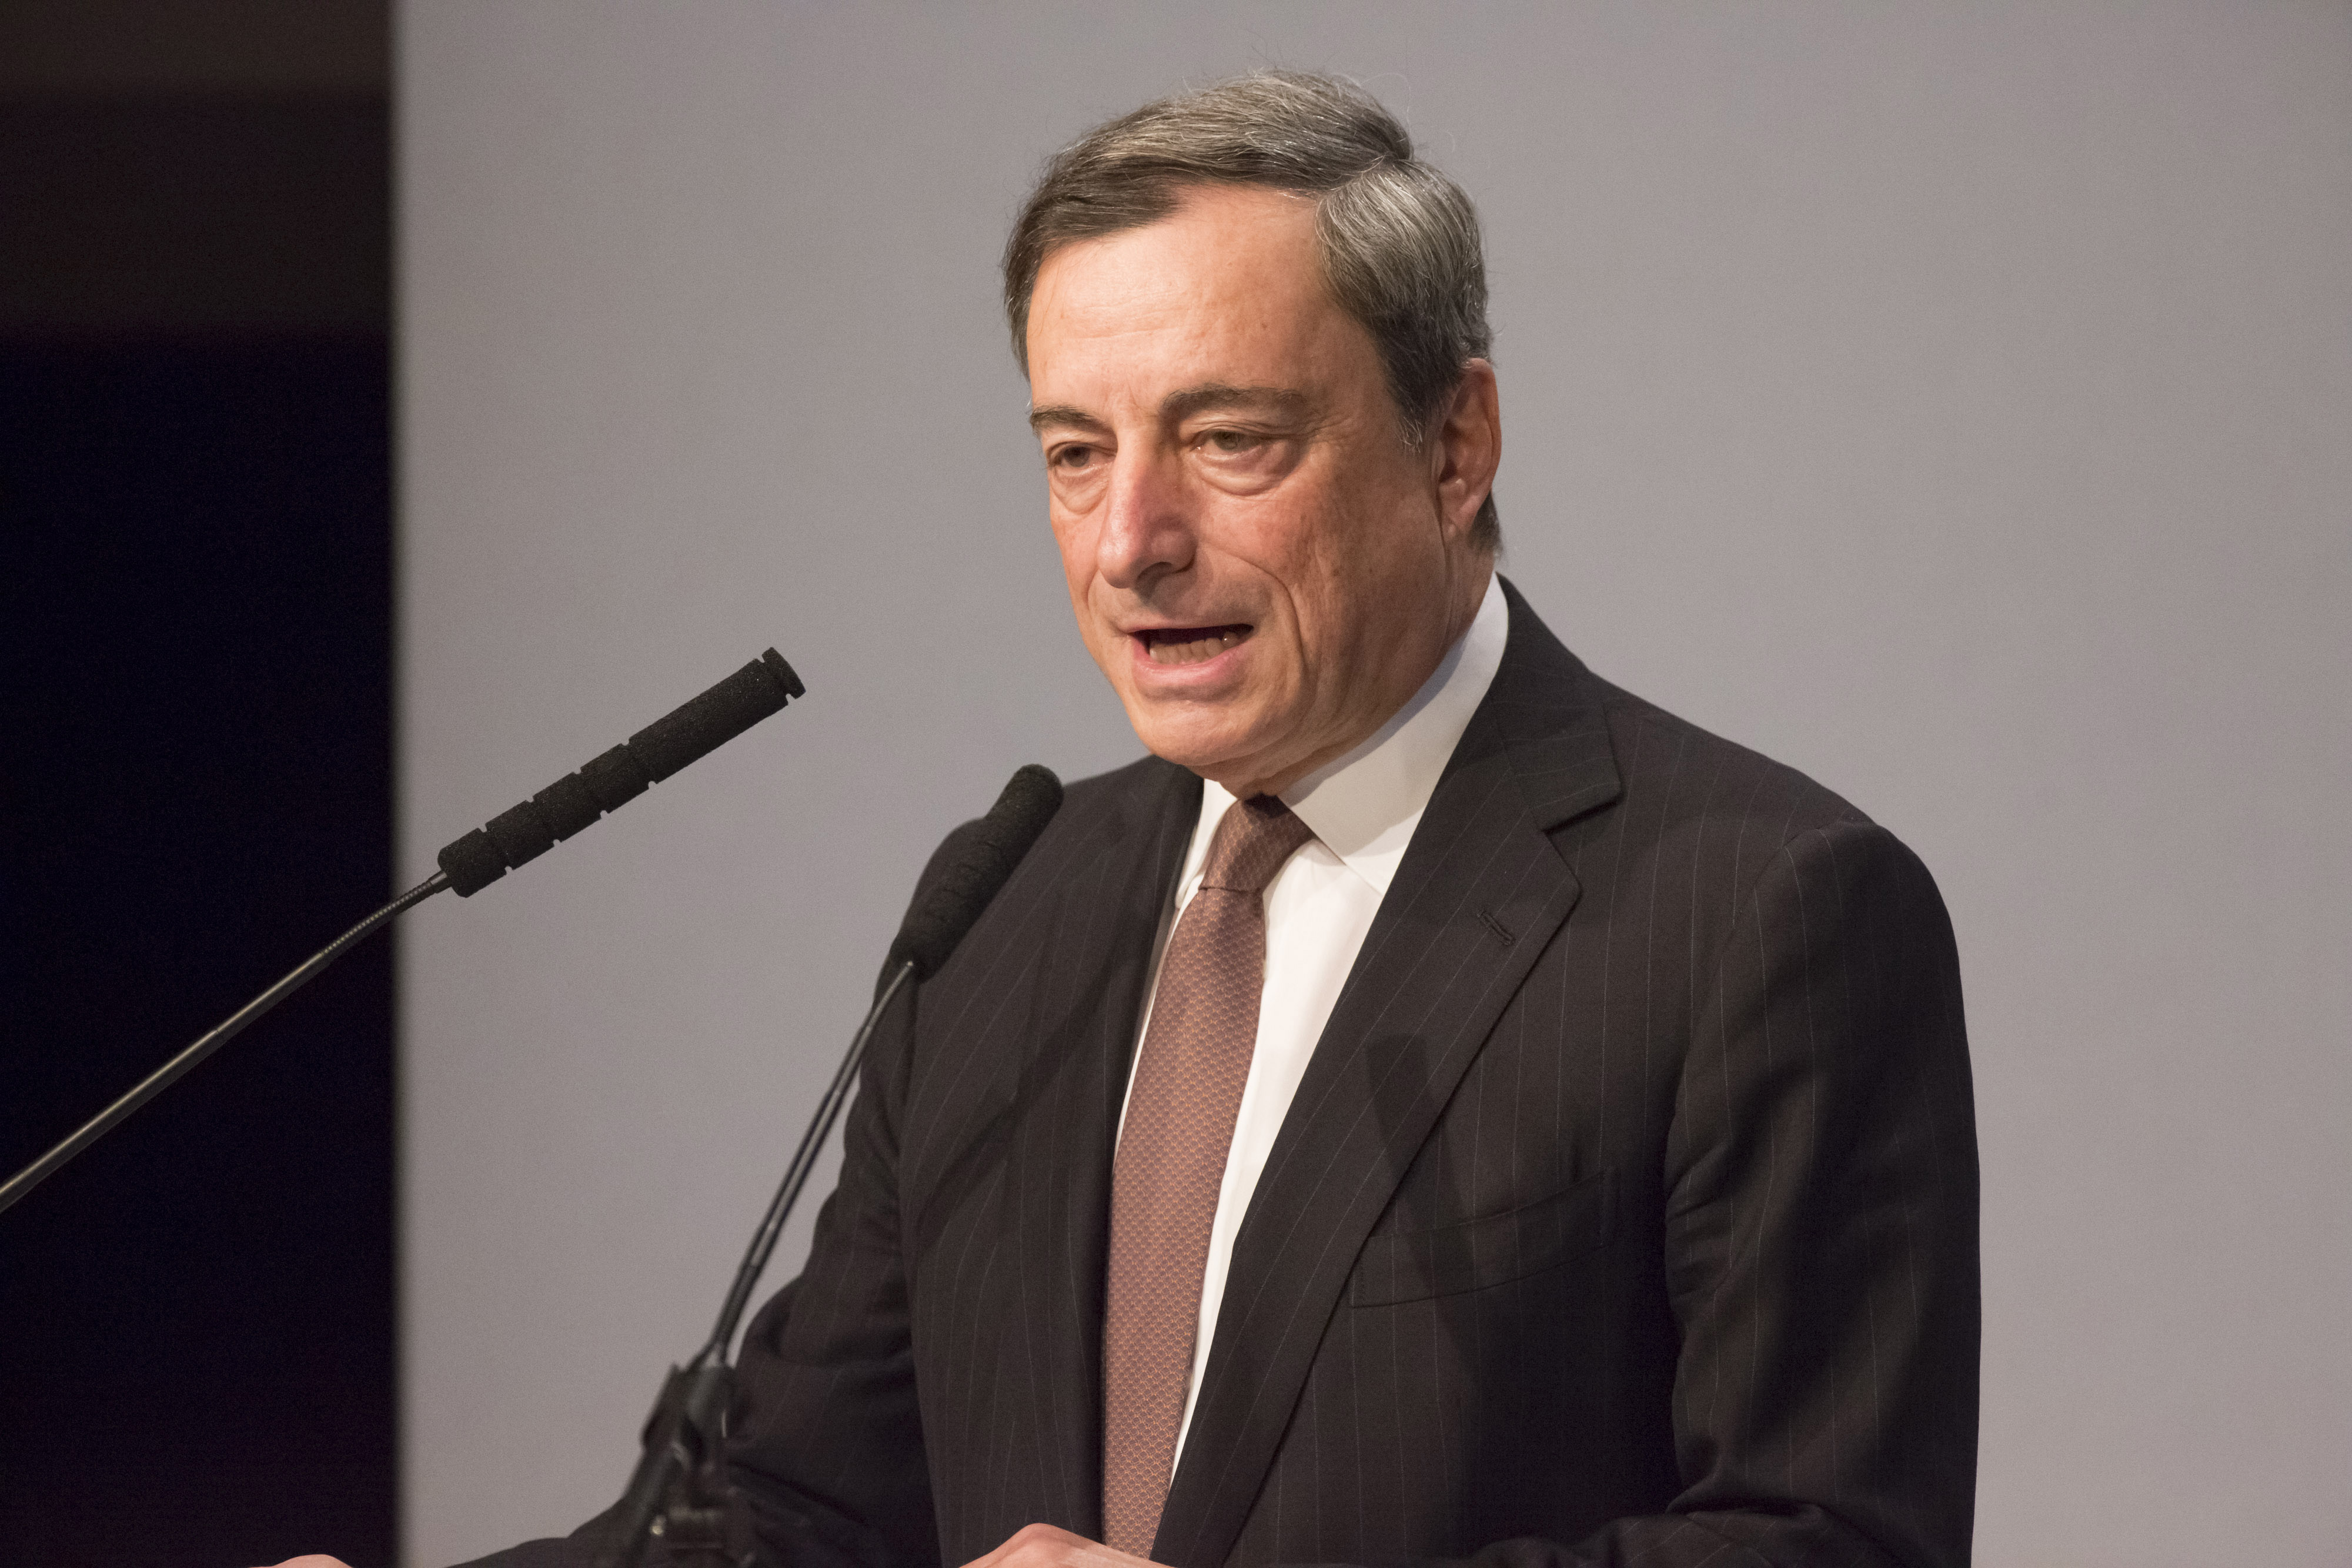 European Central Bank President Mario Draghi And Other Key Speakers At The European Banking Congress